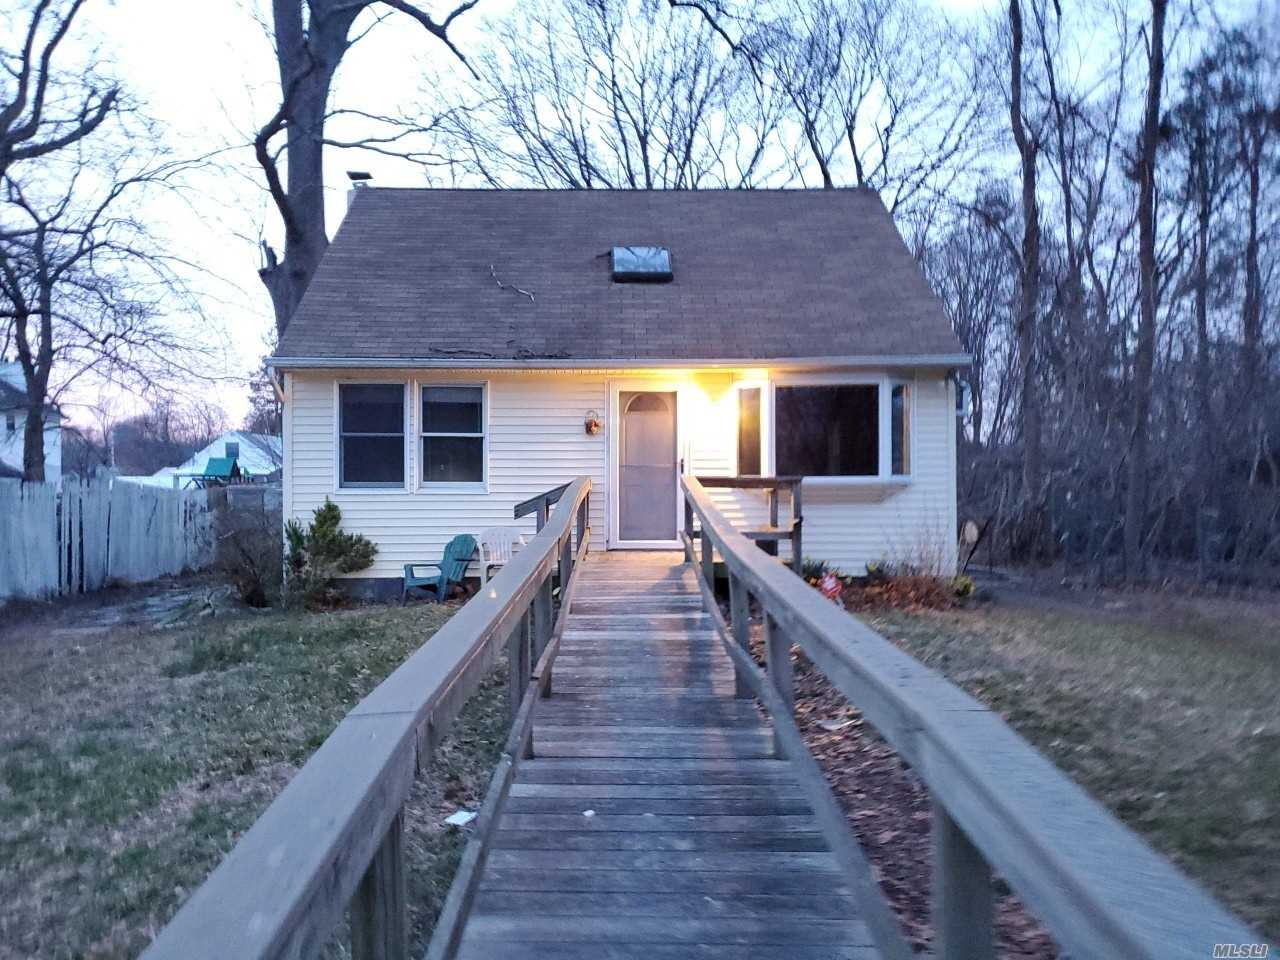 Cozy Cape with 6 rooms 3 beds and 1 bath. Half Hollow Hills Schools. Close to Shopping, Transportation and Major Roadways